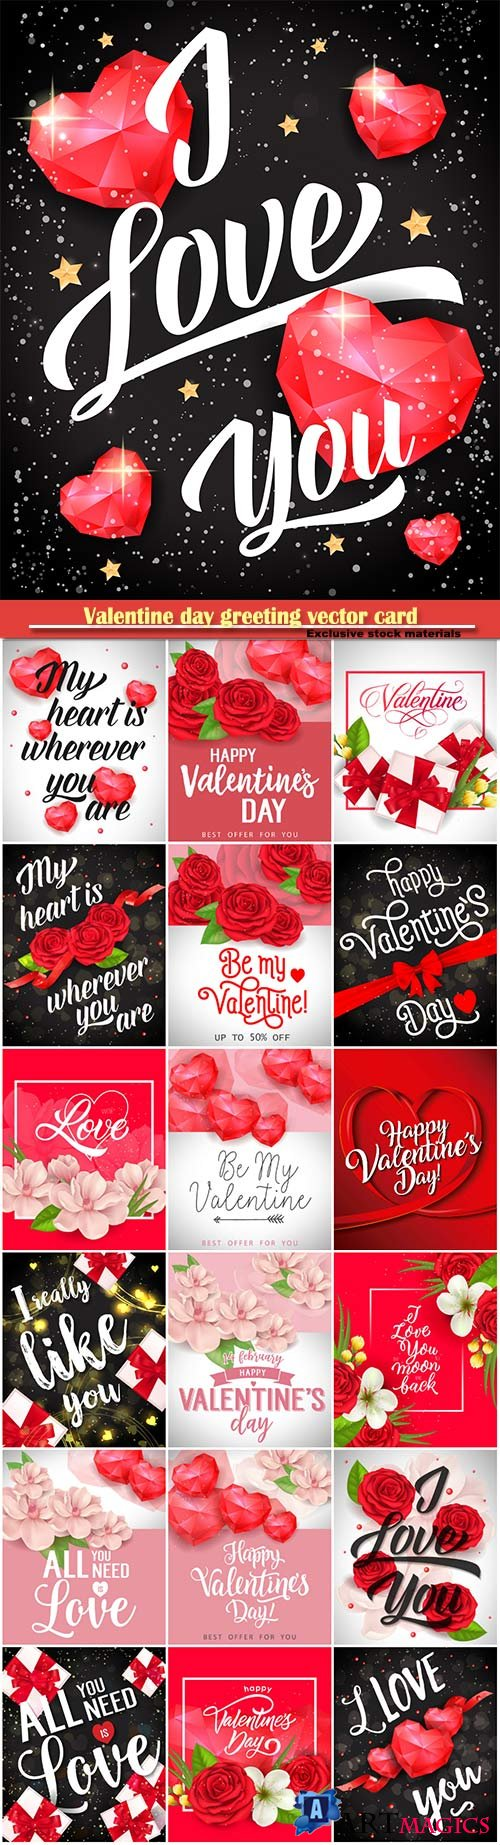 Valentine day greeting vector card, hearts i love you # 21